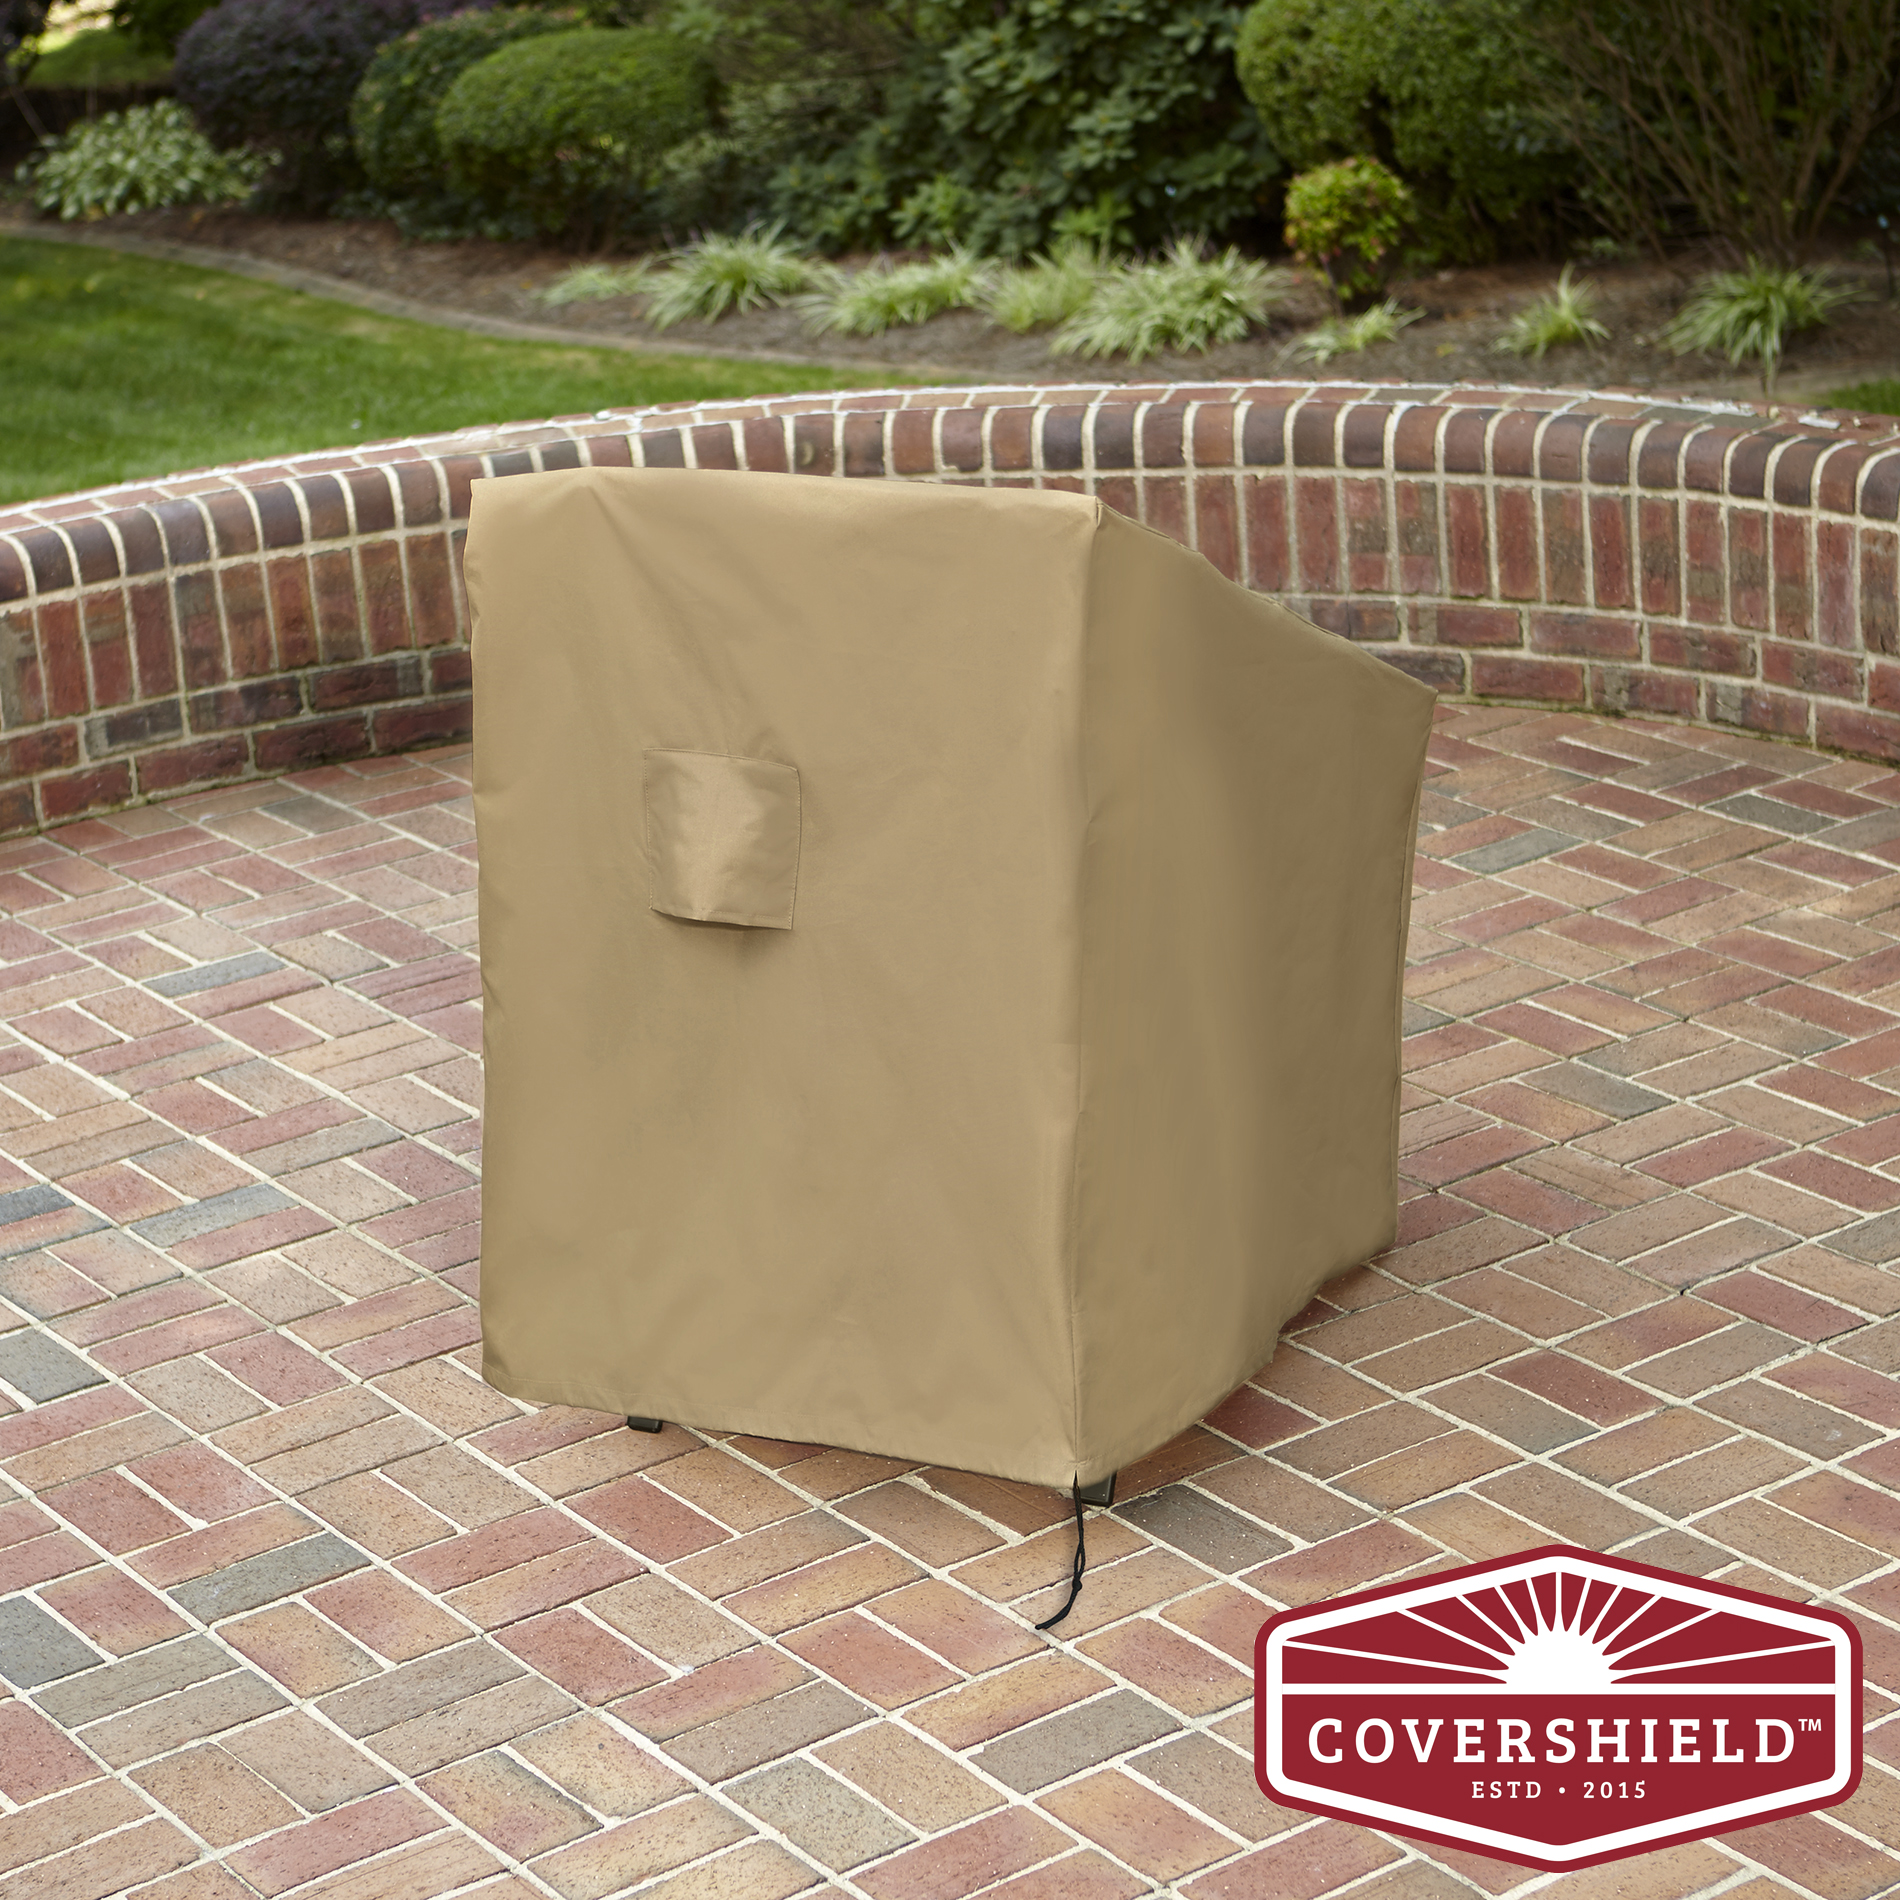 Covershield Stack Bar Chair Patio Furniture Cover Deluxe